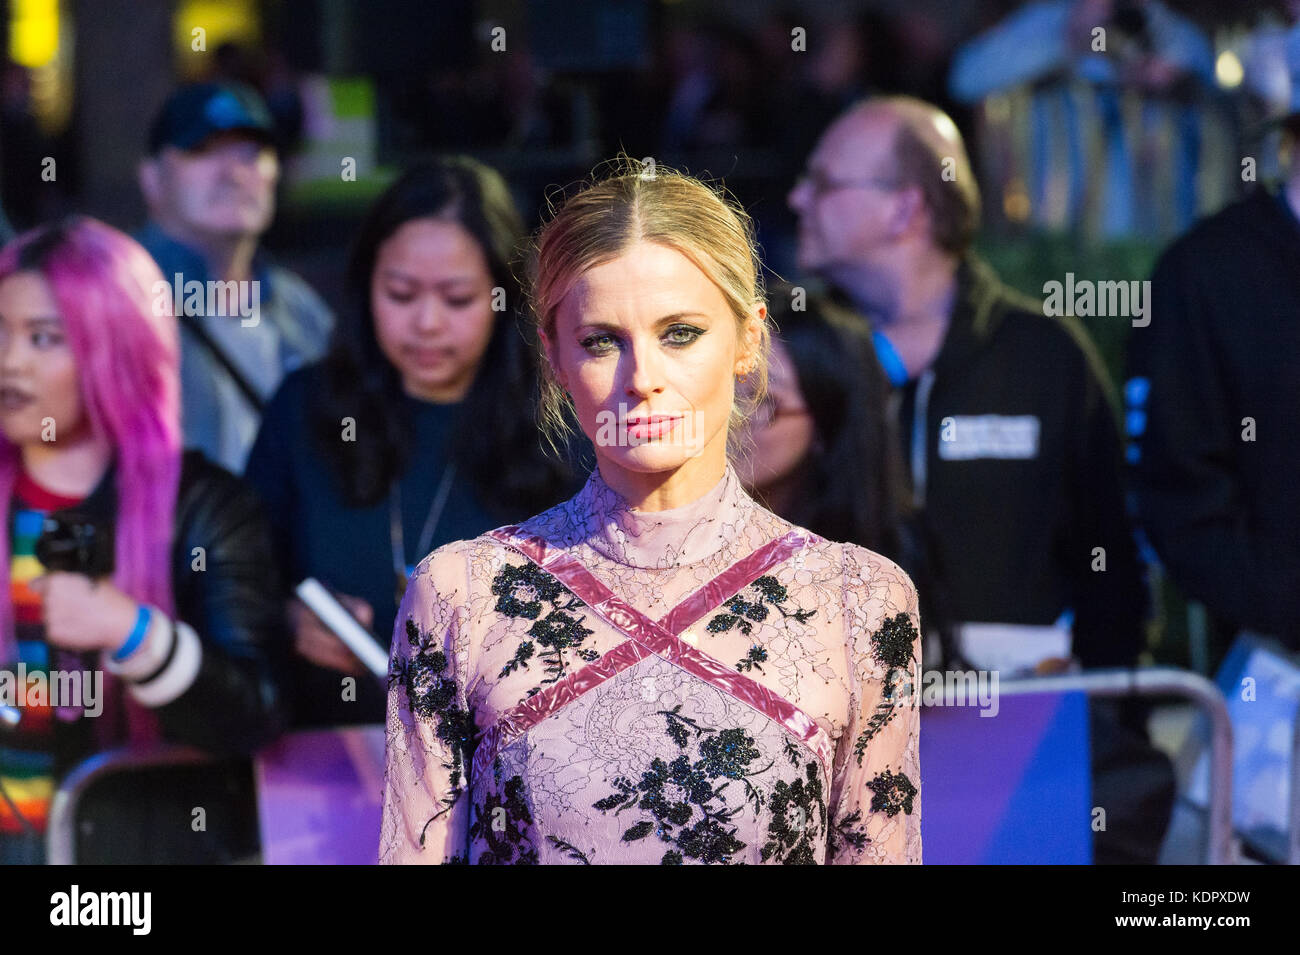 London, UK. 15th October 2017. Laura Bailey arrives for the UK film premiere of 'Three Billboards Outside Ebbing, - Stock Image